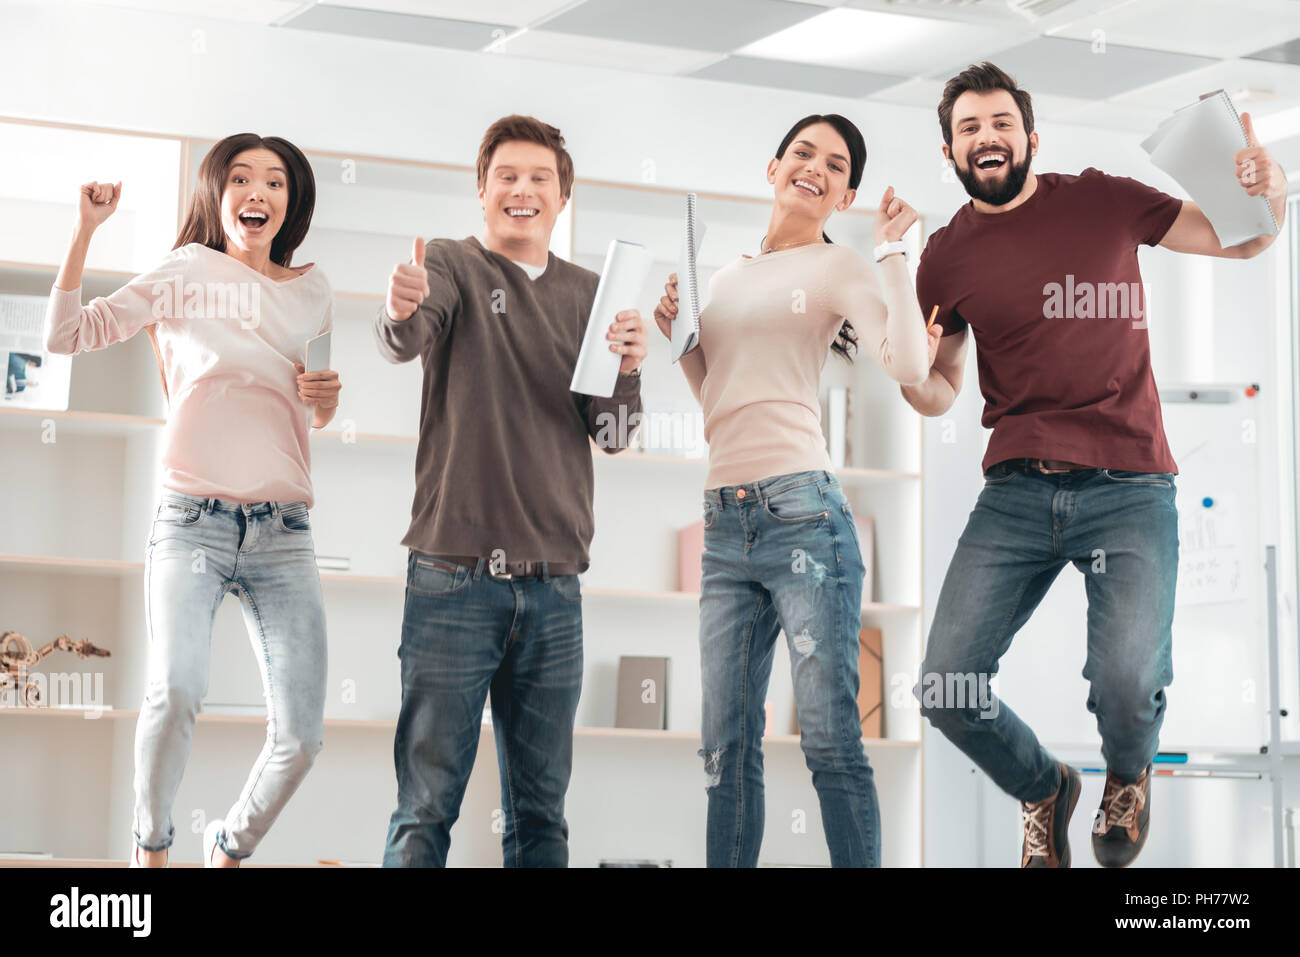 Delighted happy people jumping - Stock Image